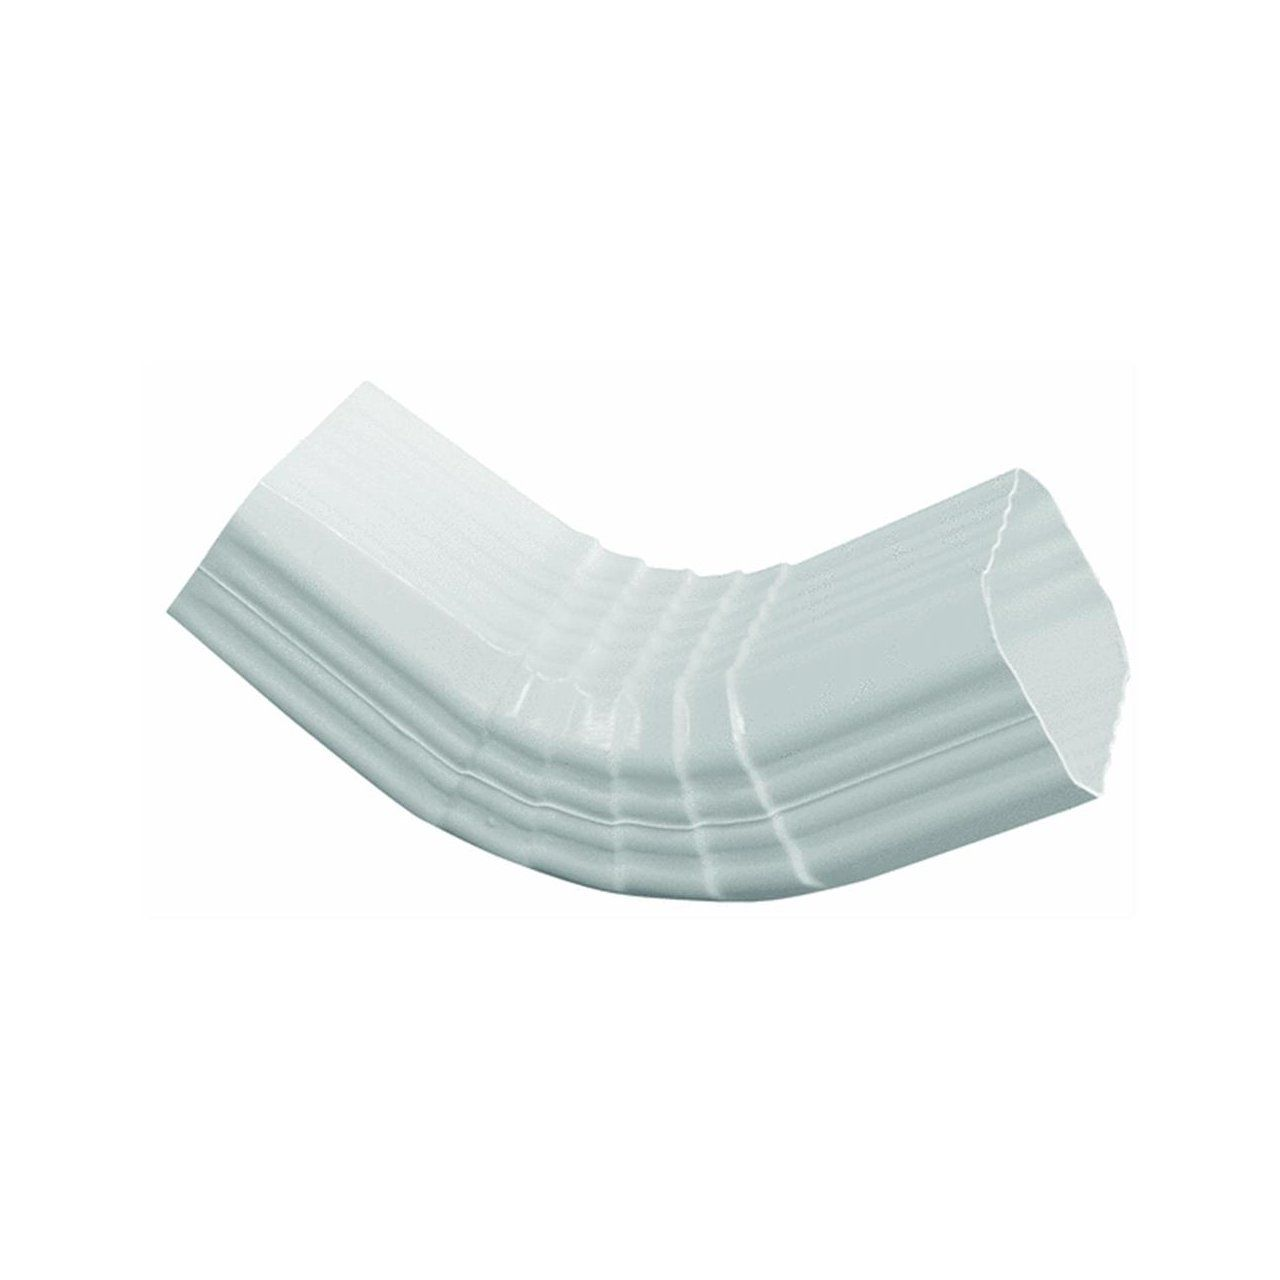 Duraspout Front Elbow You Can Find More Details By Visiting The Image Link Roofing Vinyl Downspout